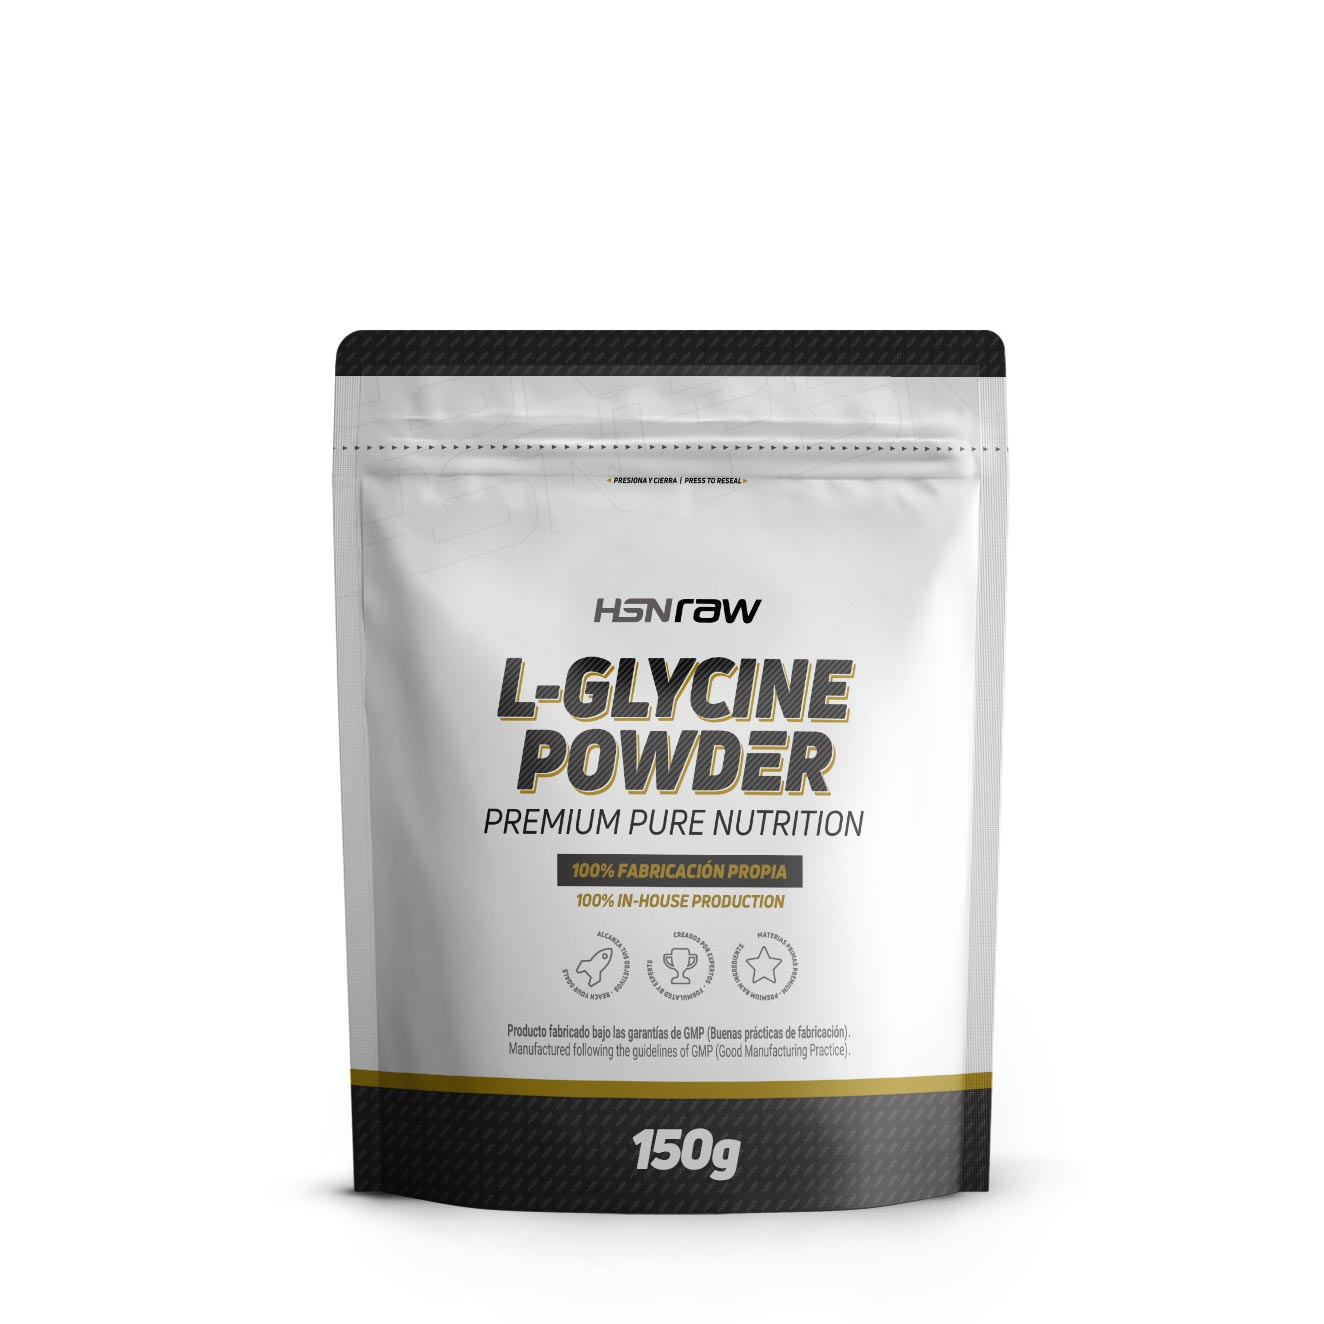 L-GLYCINE POWDER 150g